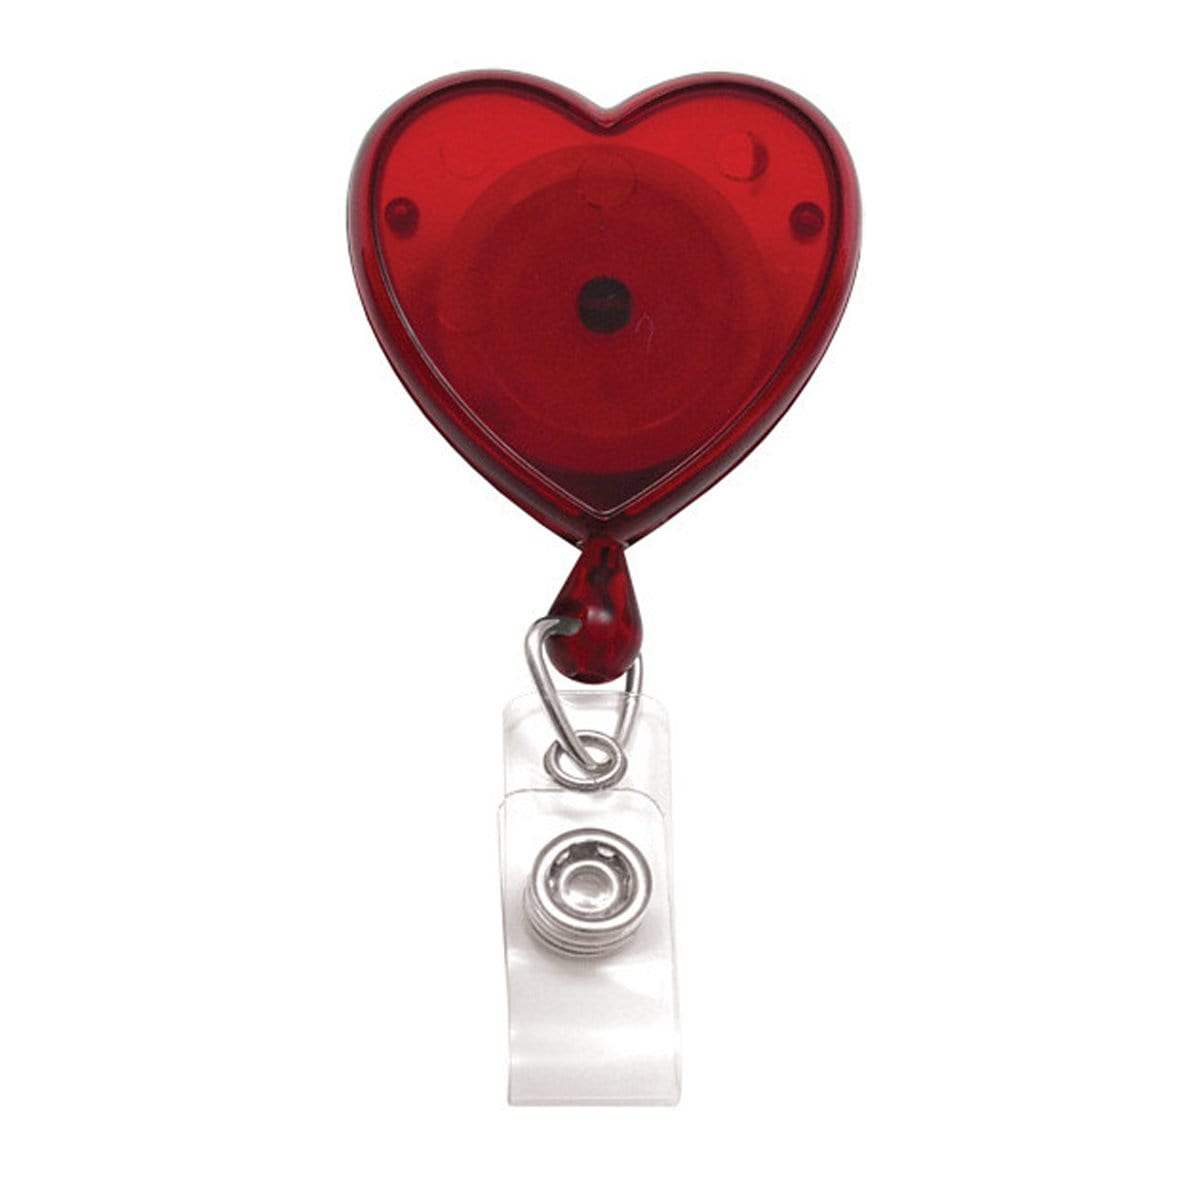 Translucent Red Heart Shaped Badge Reel With Rotating Spring Clip (P/N 2120-761X) 2120-7616